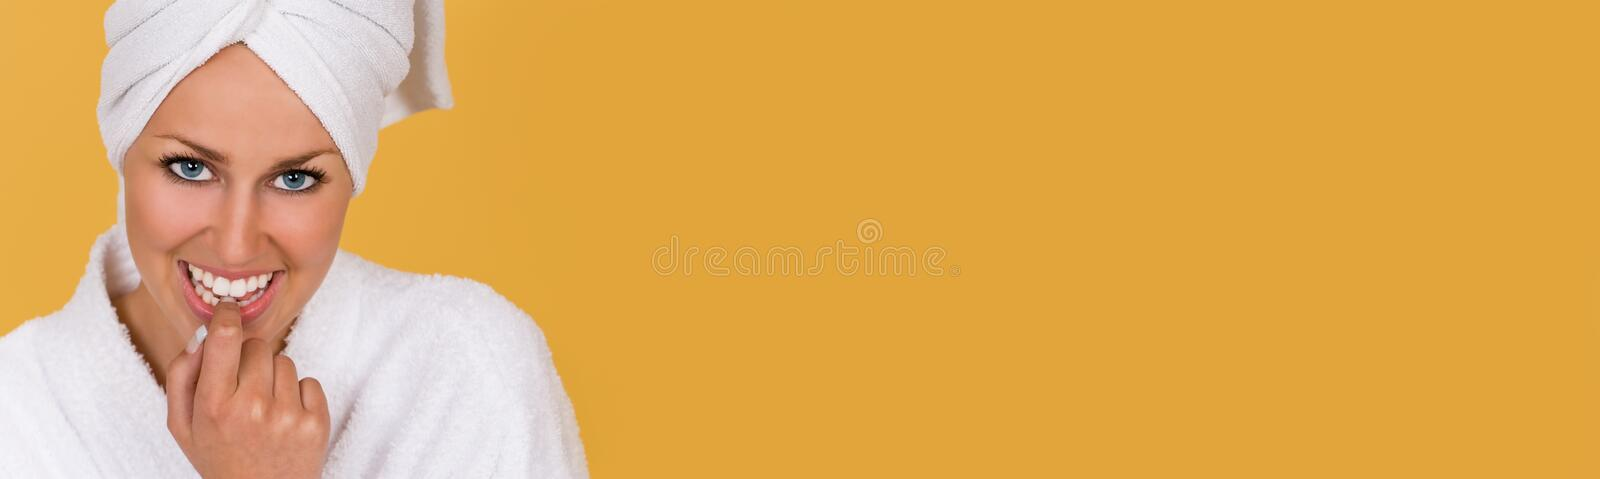 Woman Girl in Robe at Health and Beauty Spa royalty free stock photos